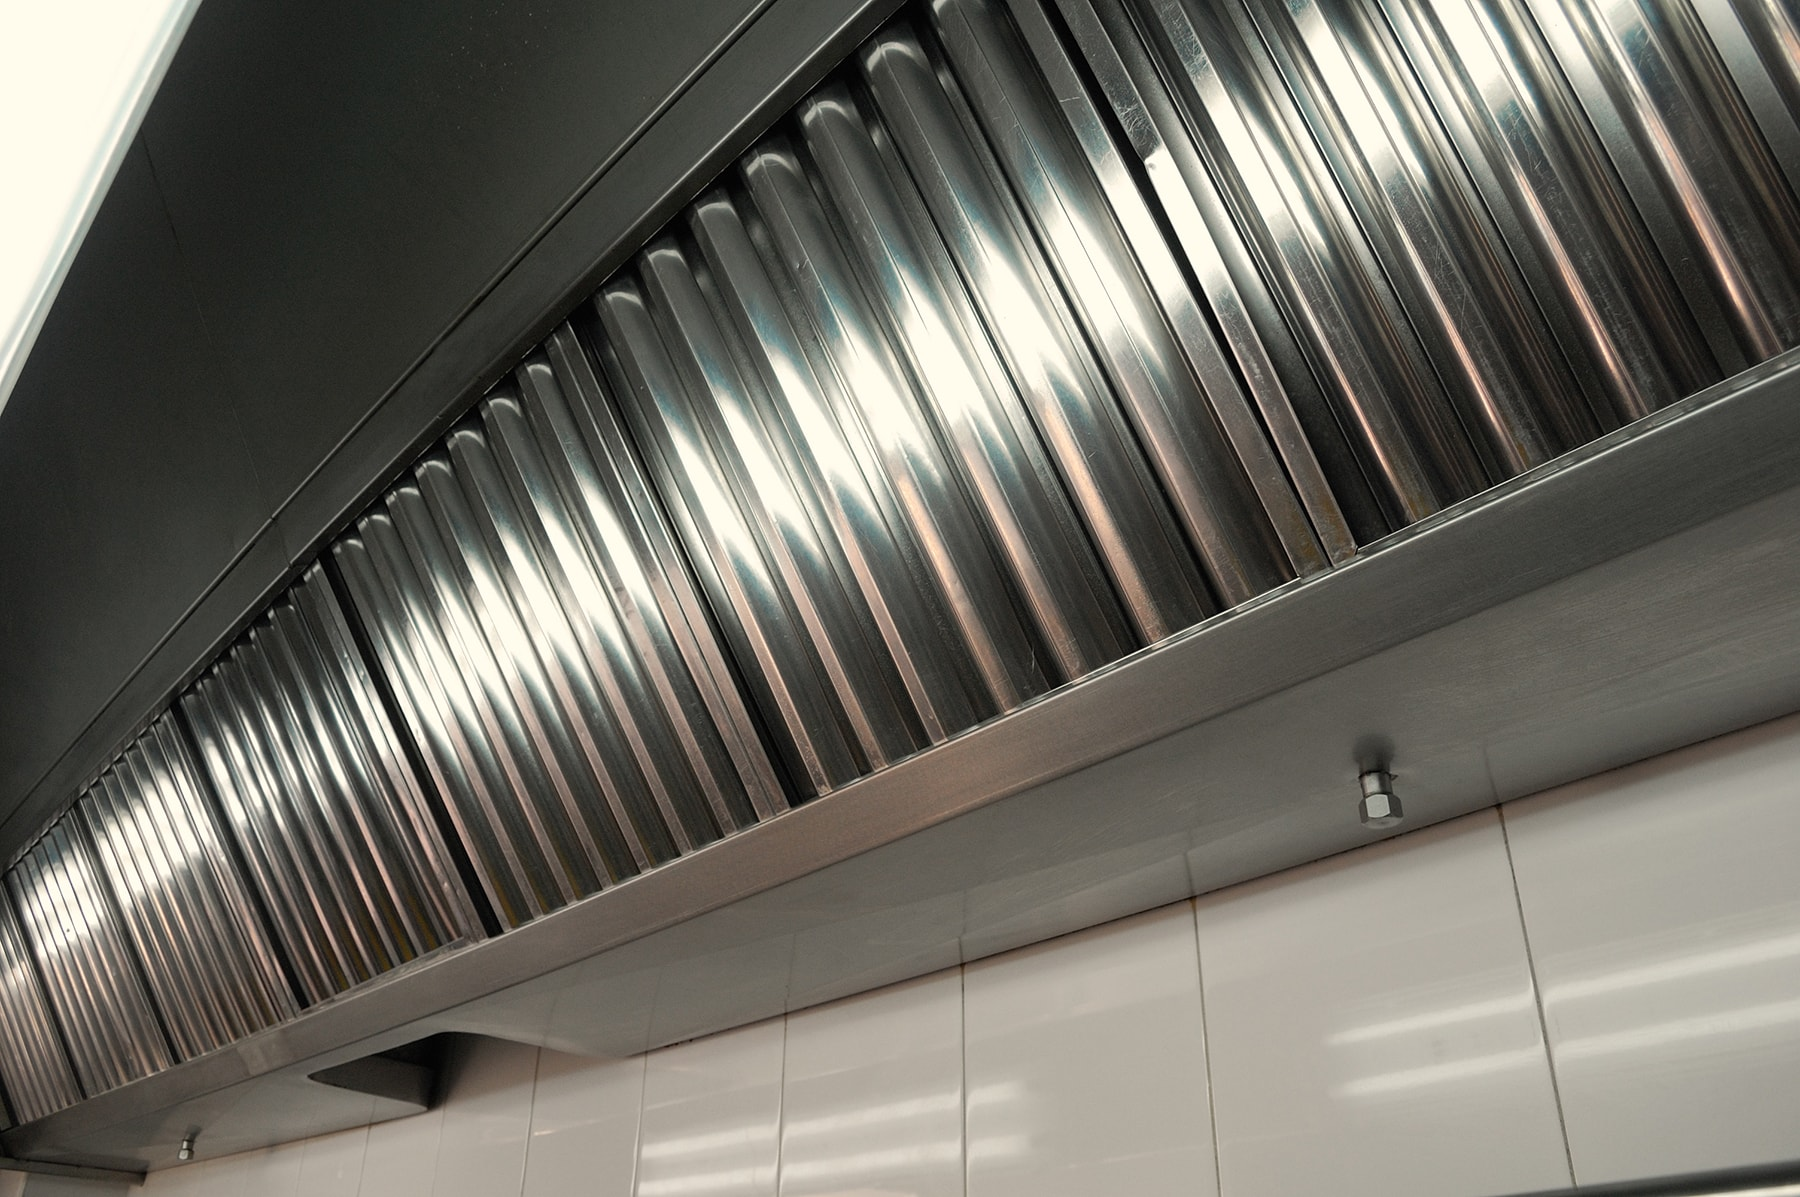 Exhaust Fan Repair Hood And Grease Filters Ductwork